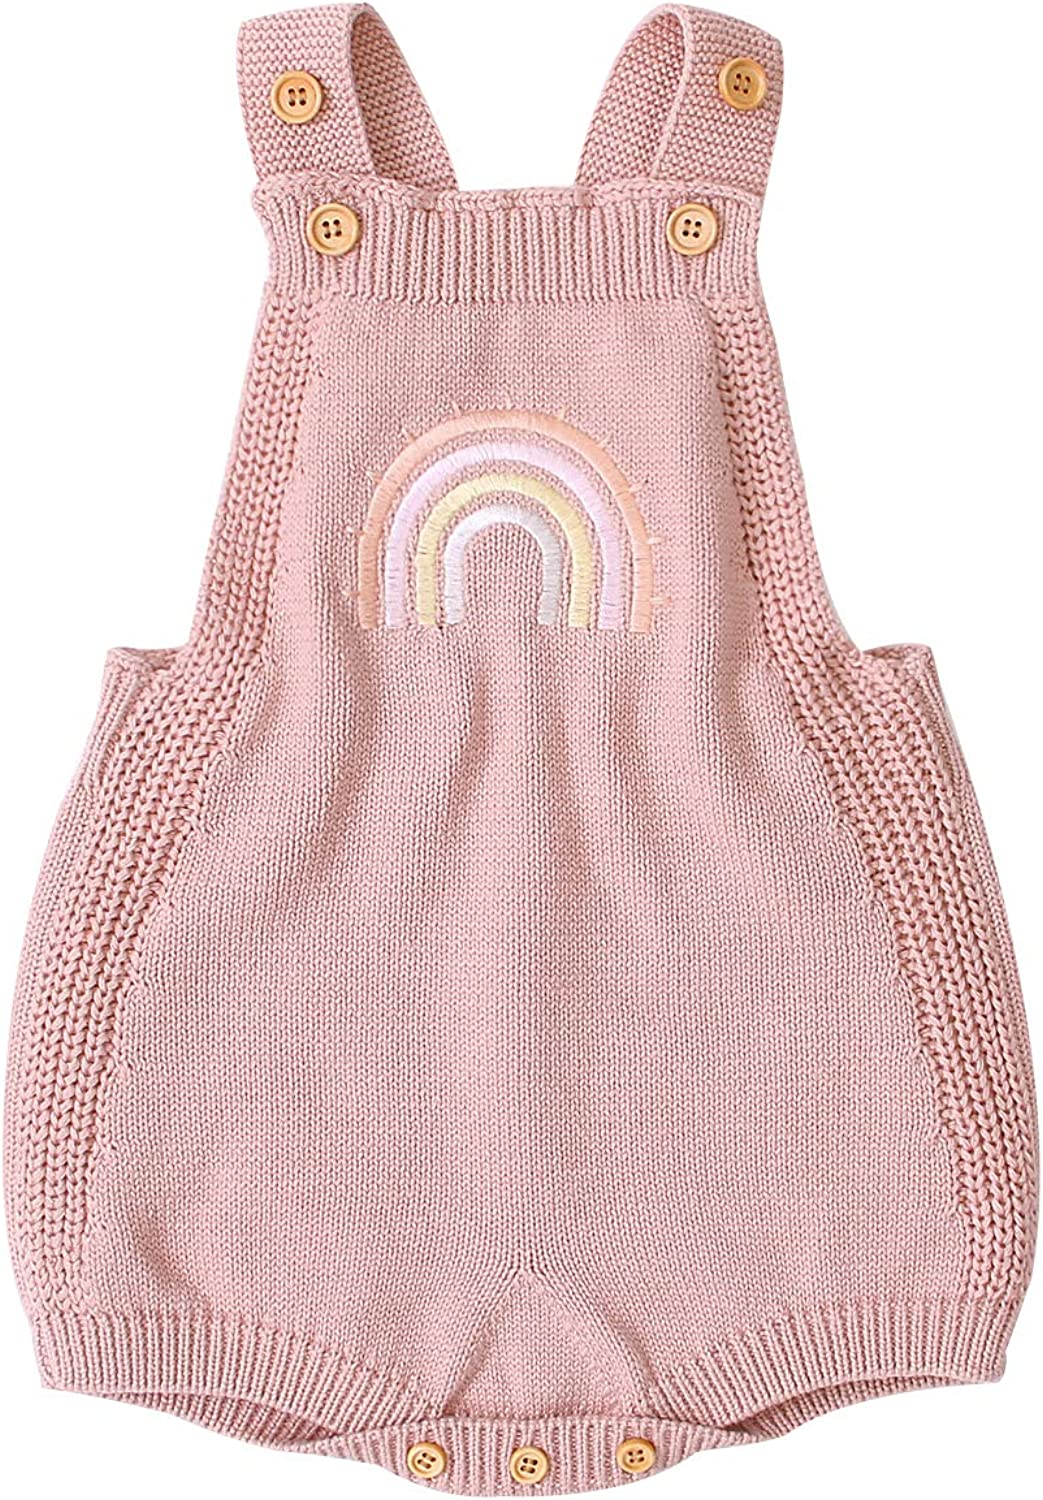 mimixiong Baby Romper Max 82% OFF Girls Knitted Sleeveless Jumpsuit Piec One Max 49% OFF